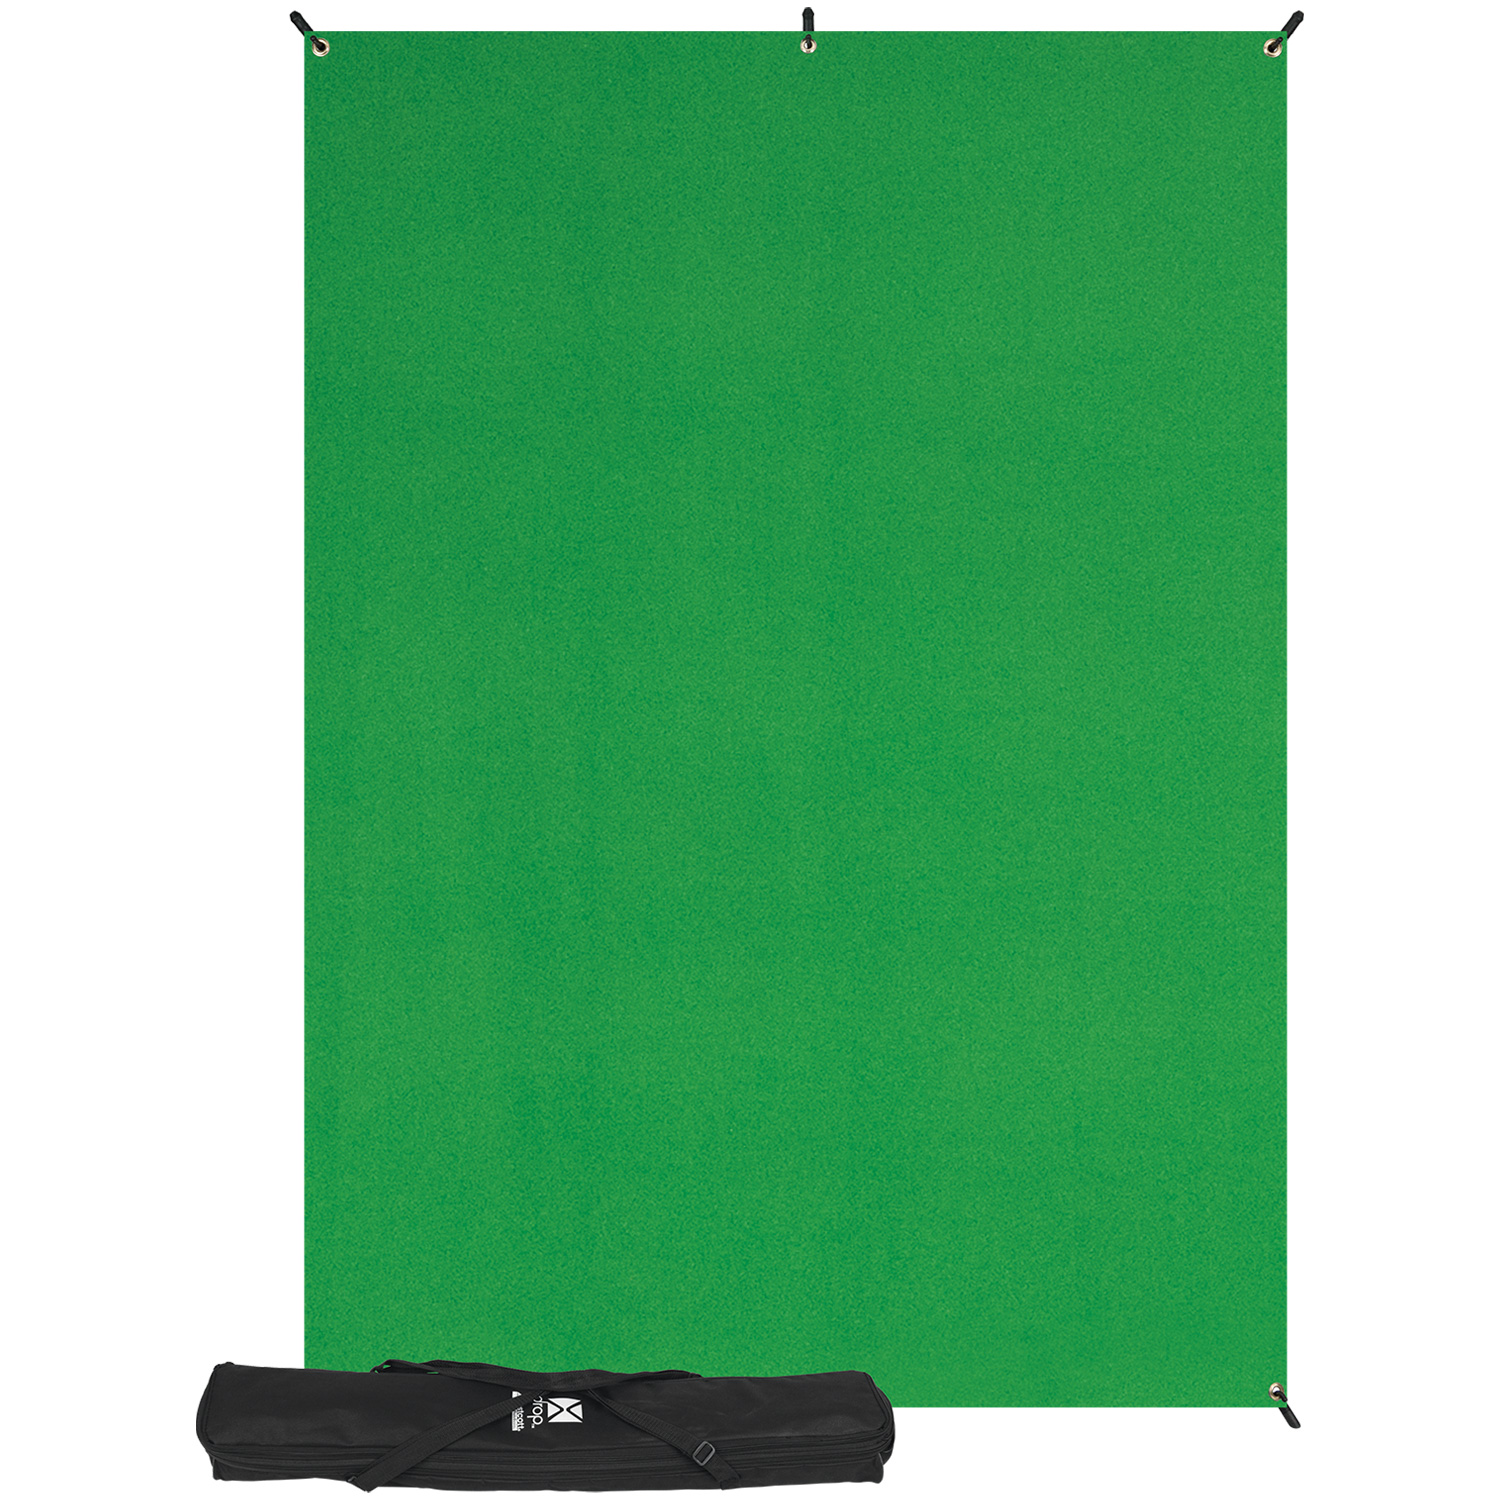 X-Drop 5' x 7' Green Screen Backdrop Kit